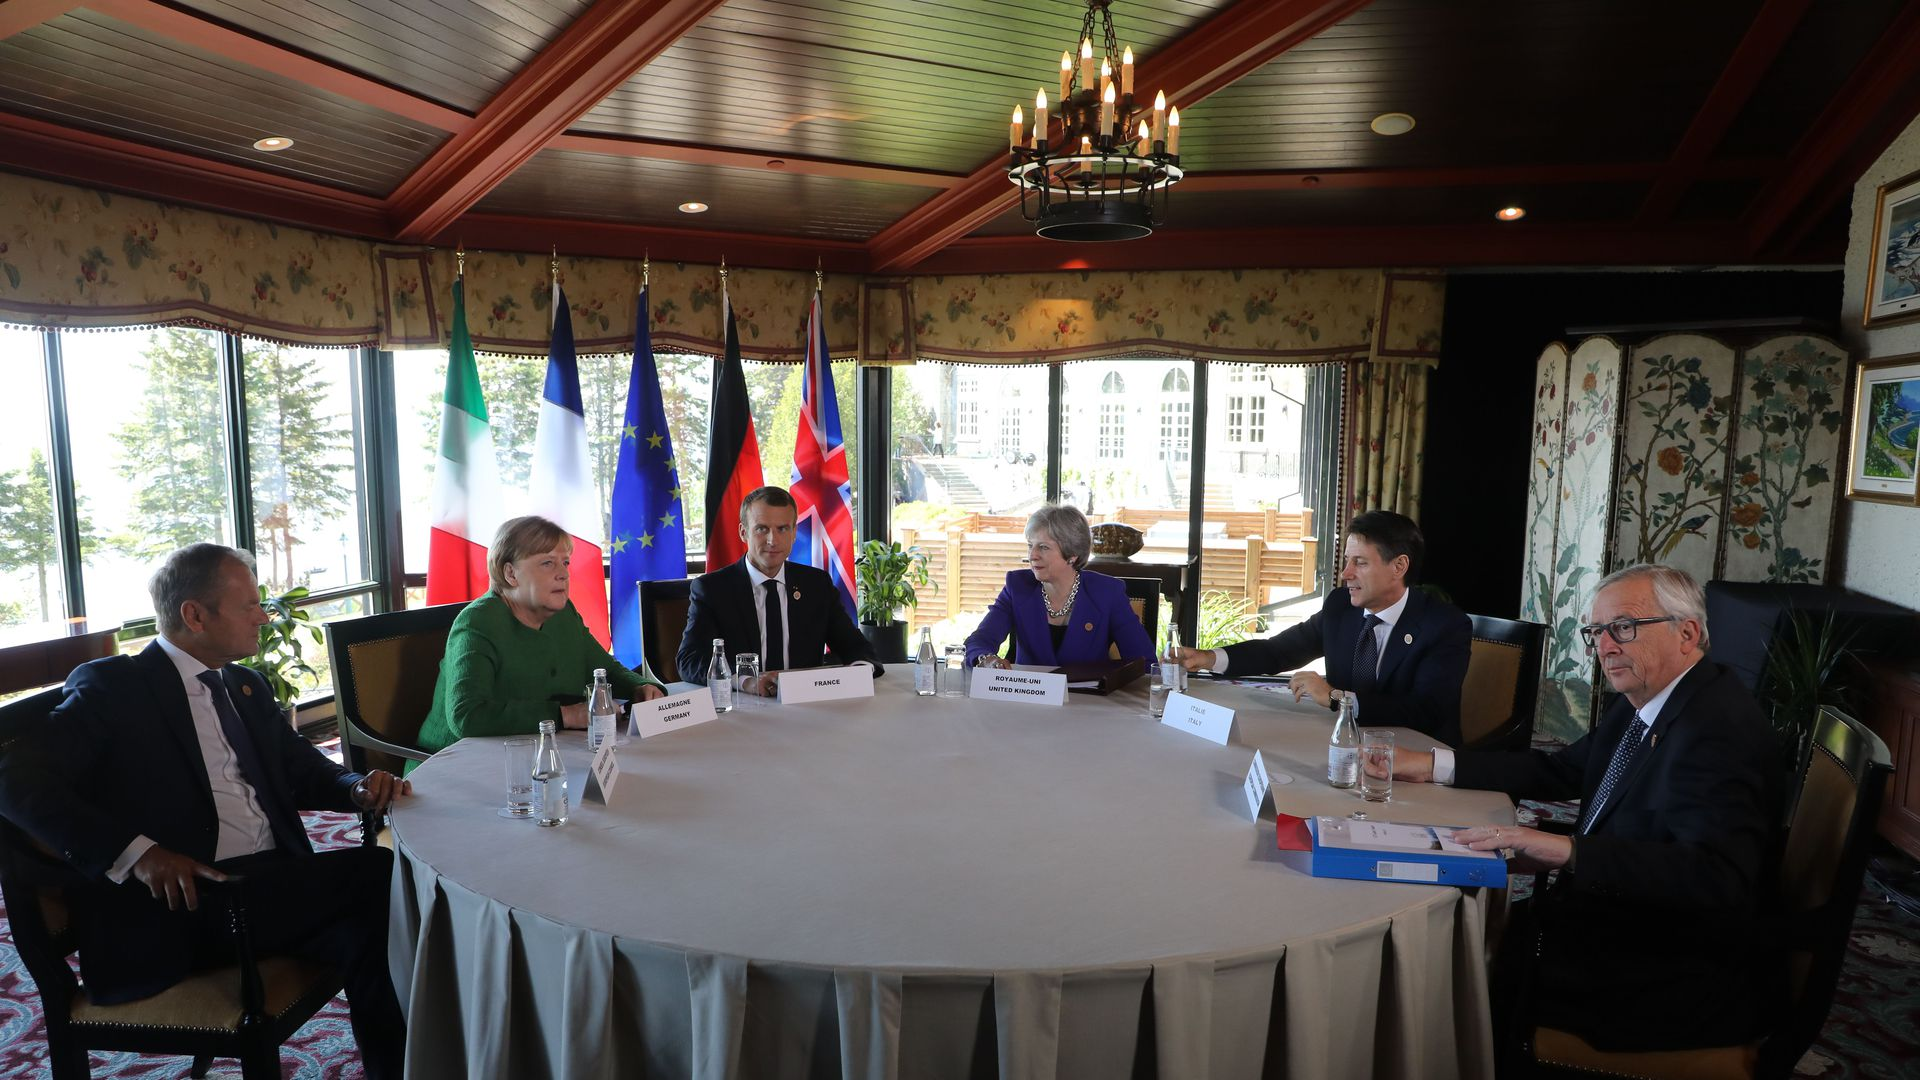 European leaders around a table at the G7 summit